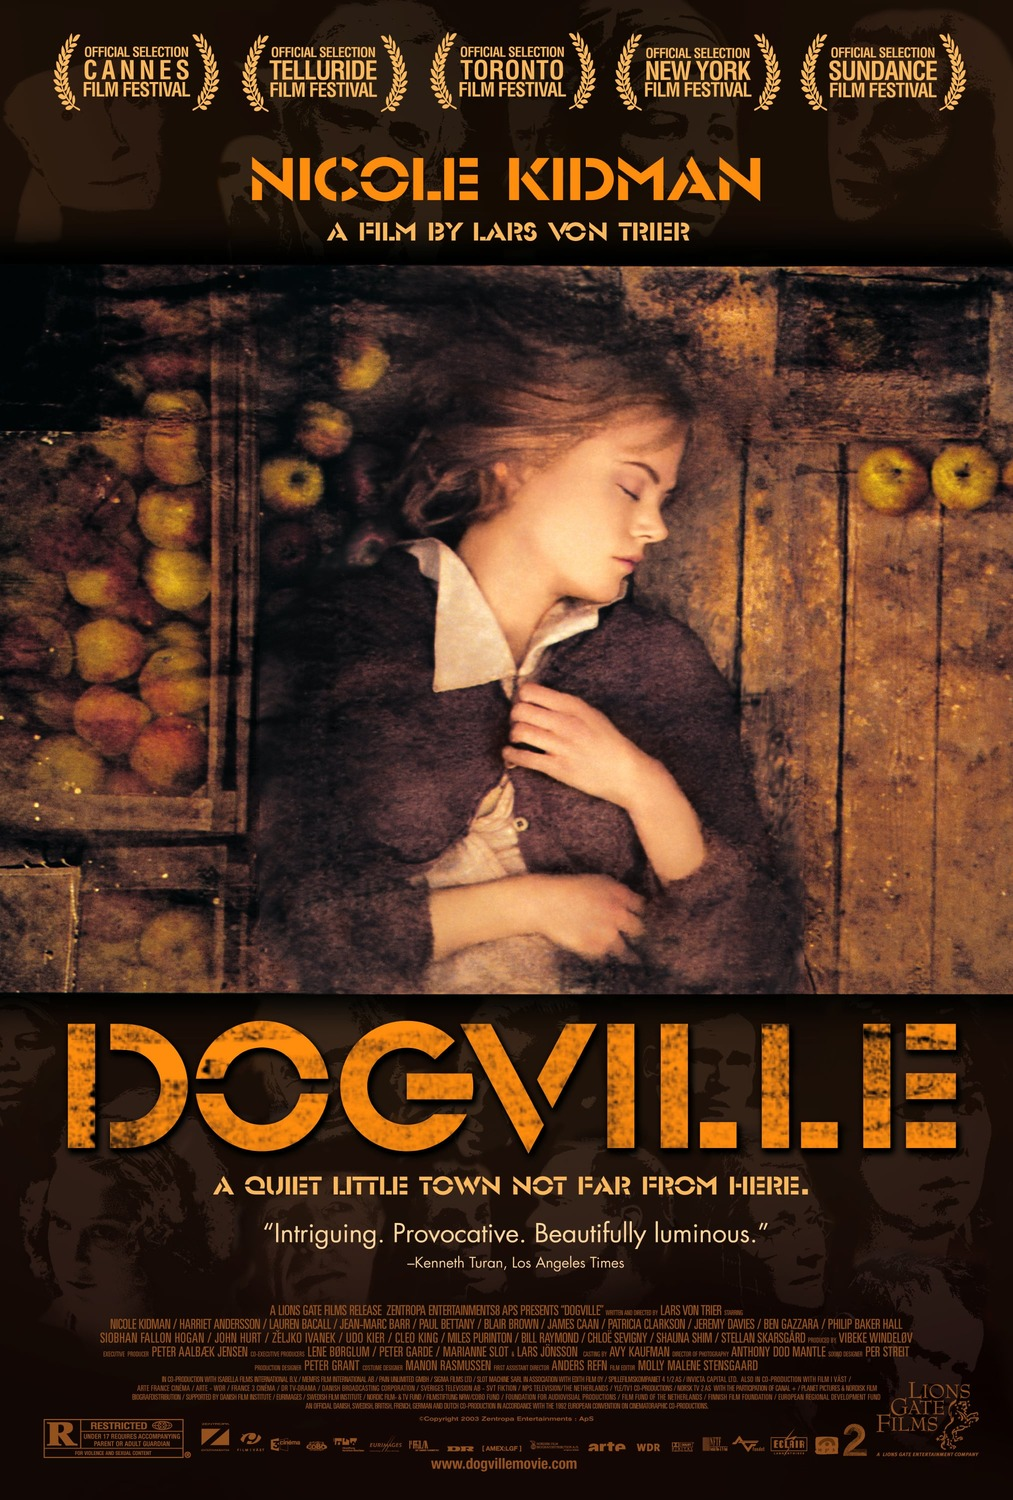 https://i0.wp.com/www.impawards.com/2004/posters/dogville_ver3_xlg.jpg